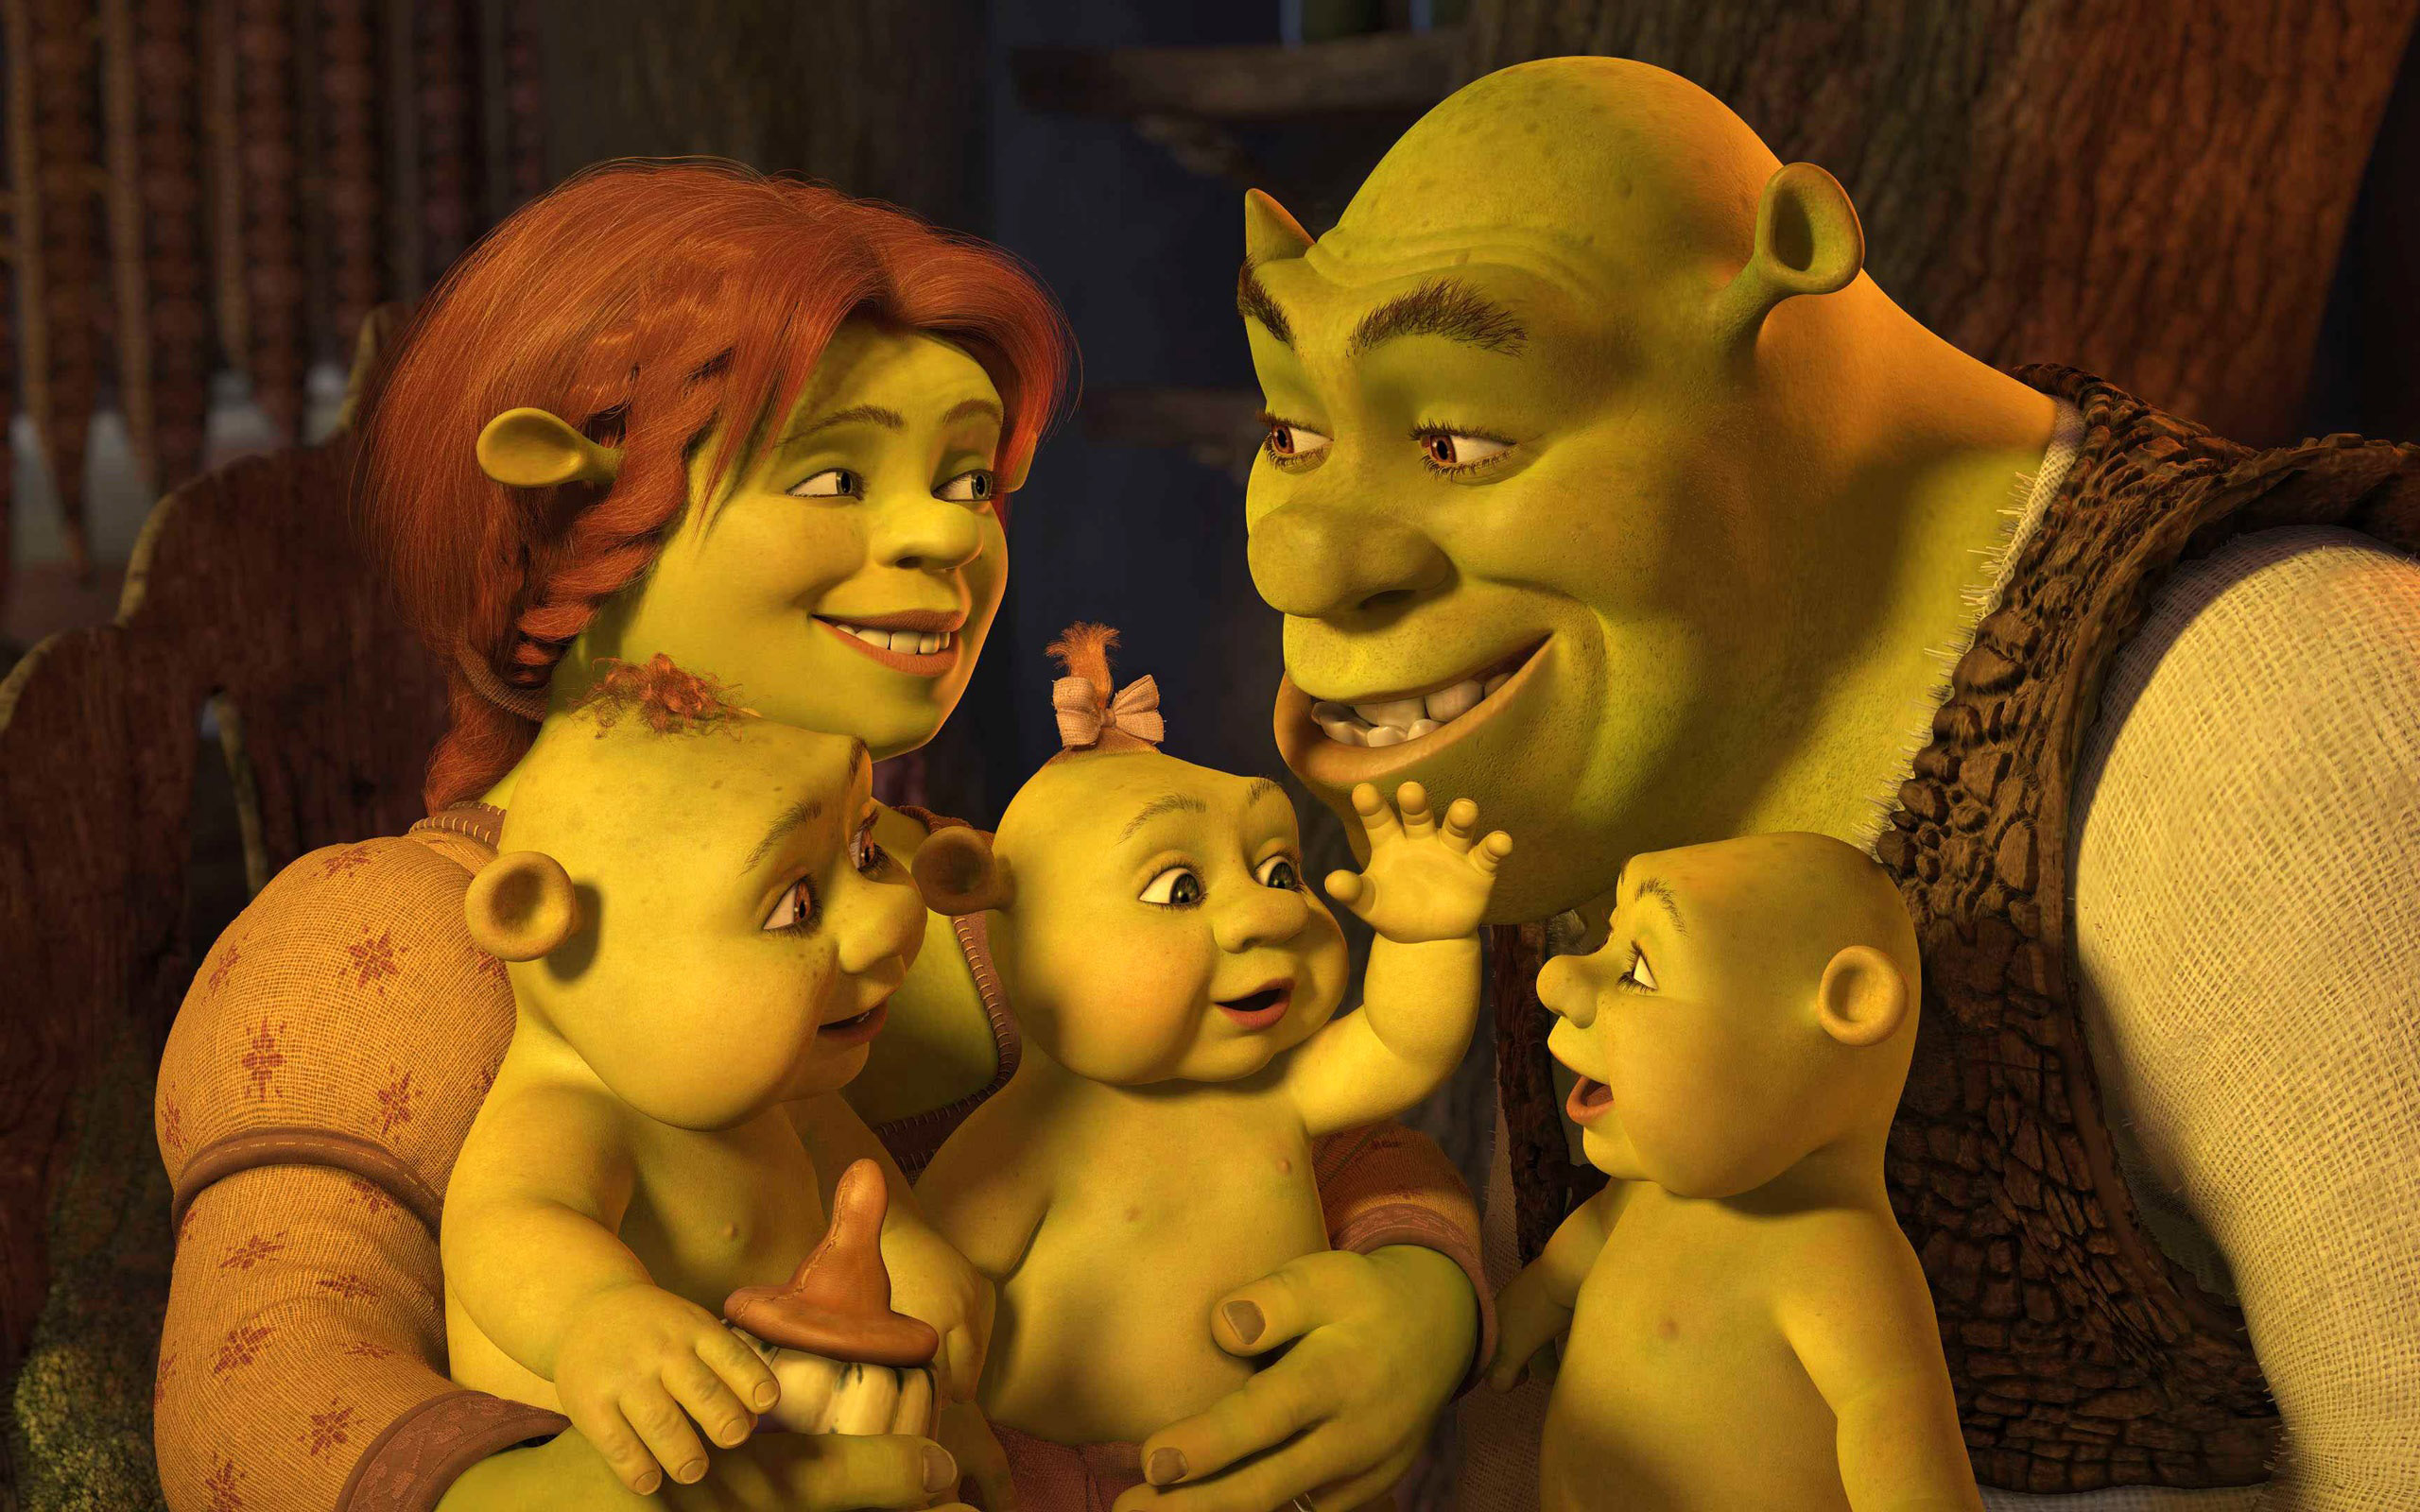 Sherk and fiona fucking porn nude pic